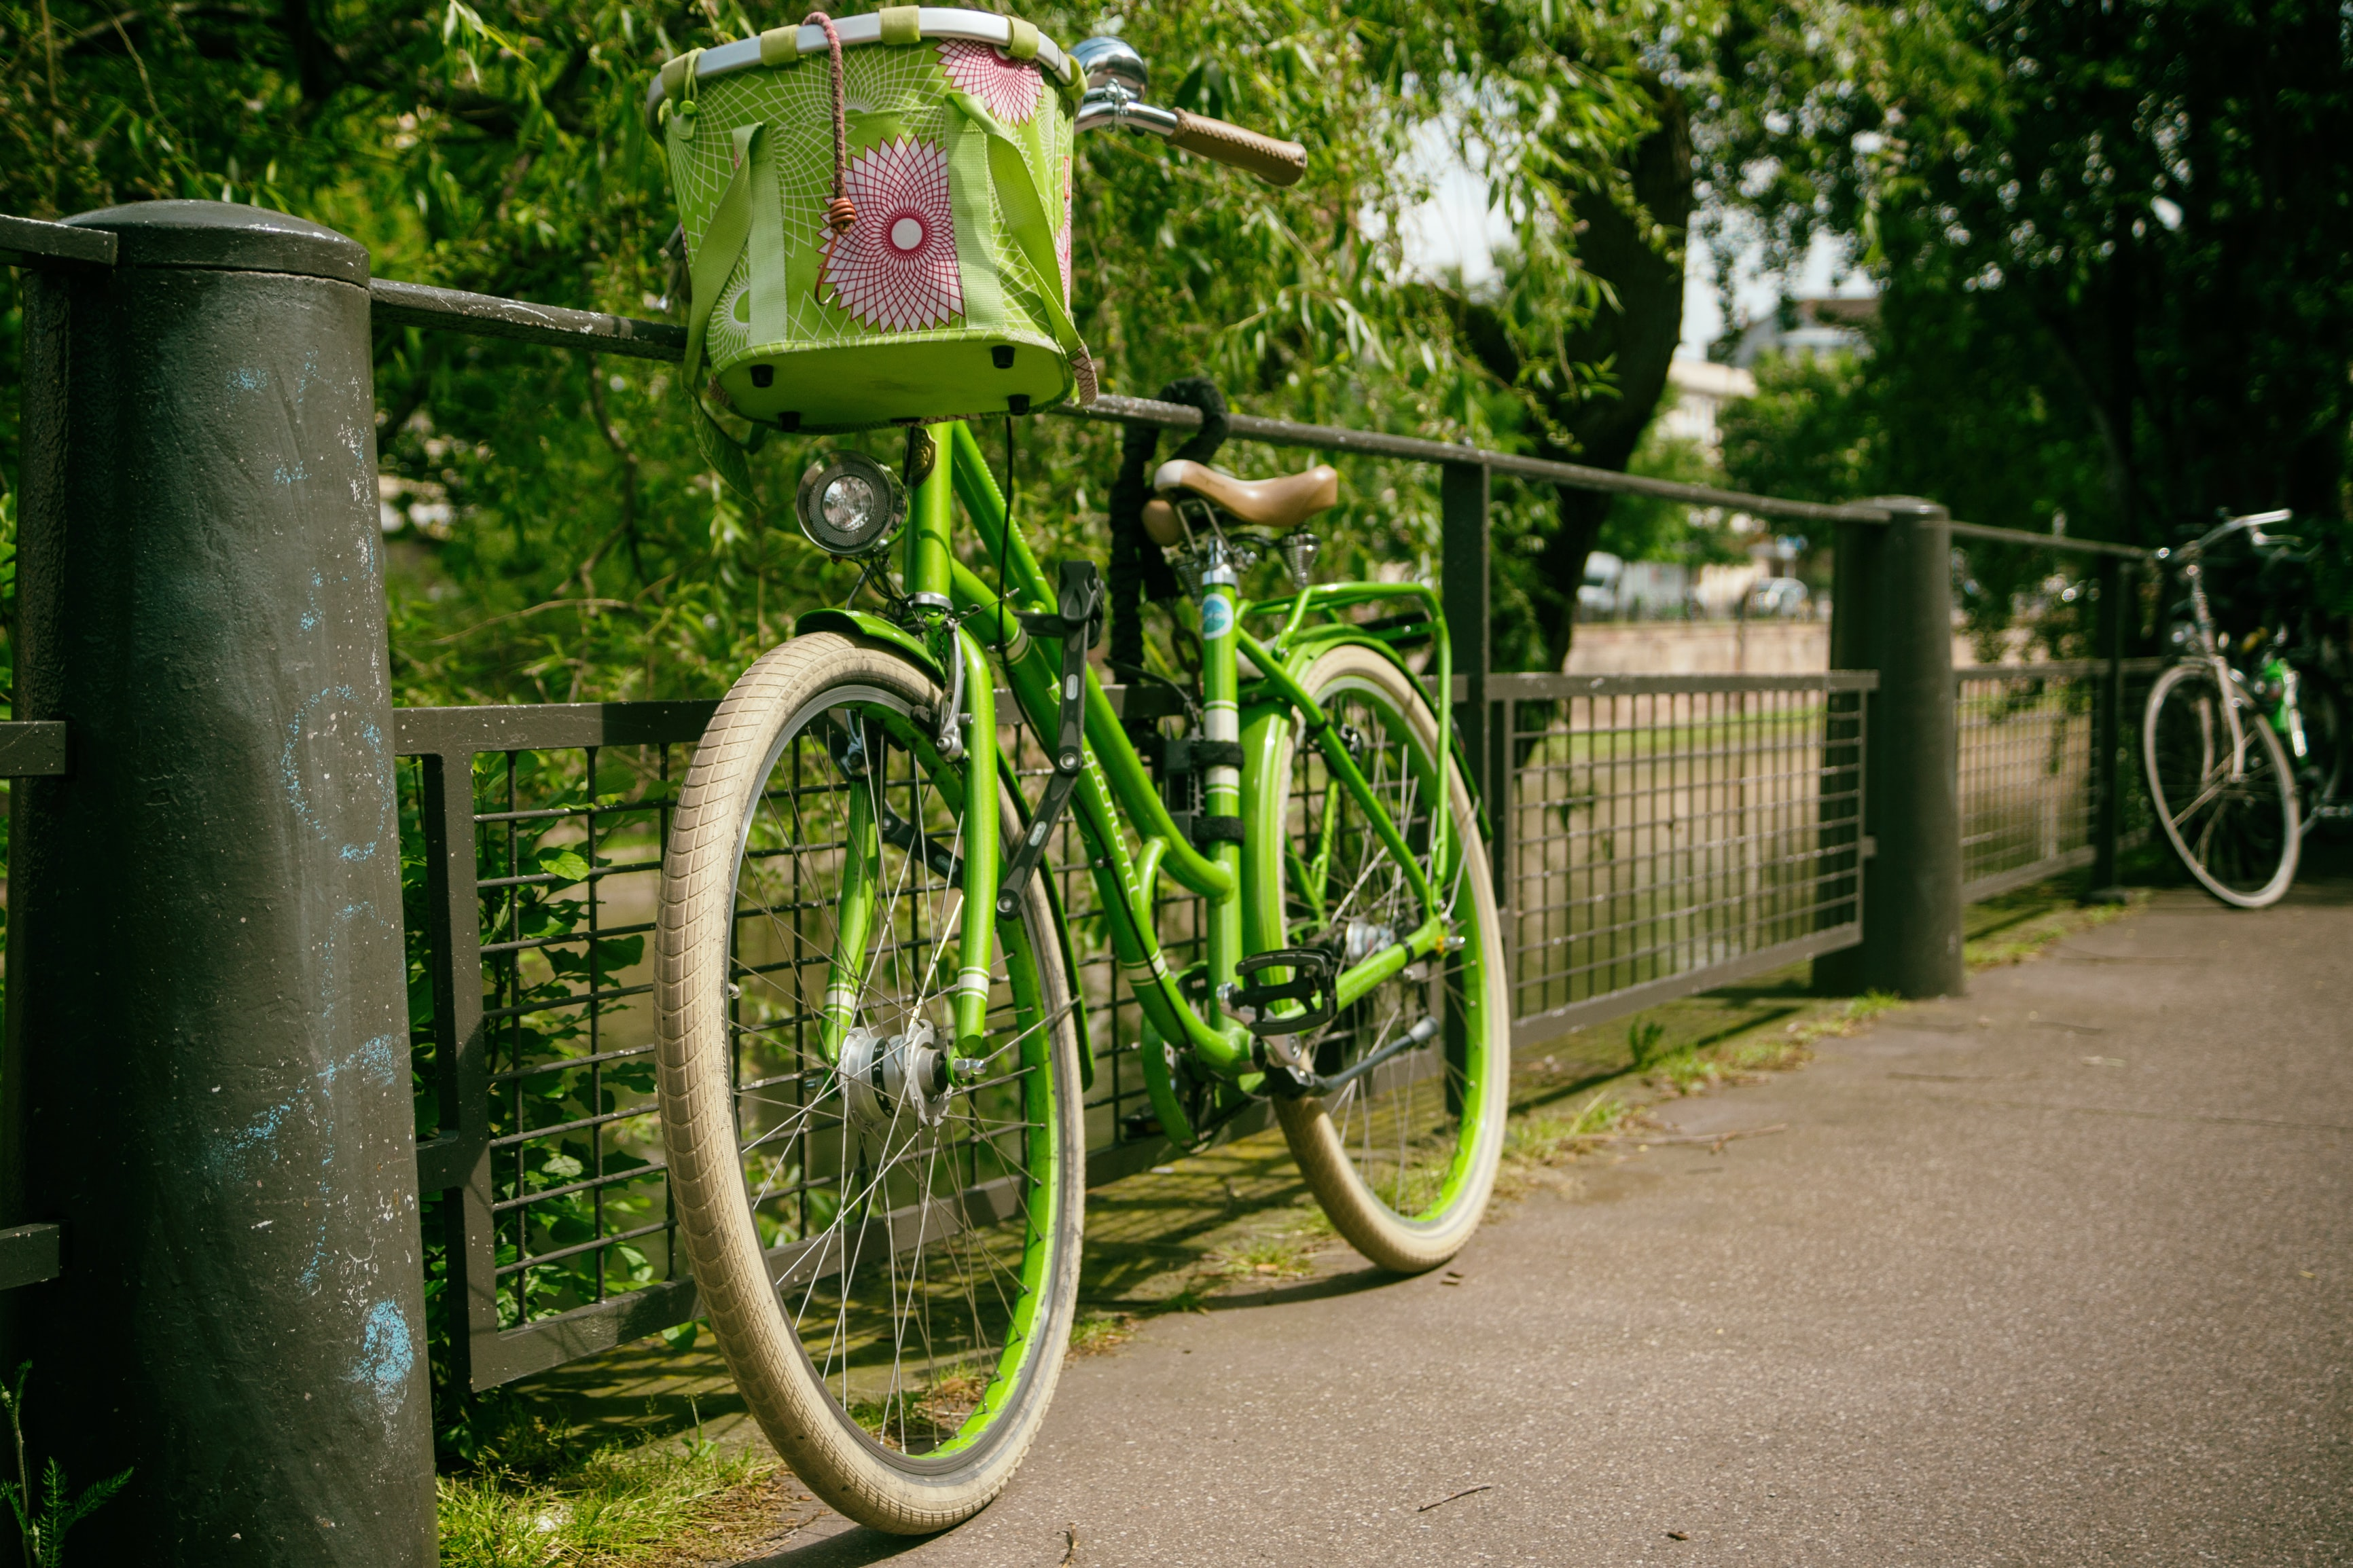 green cruiser bike with basket leaning on gray rail